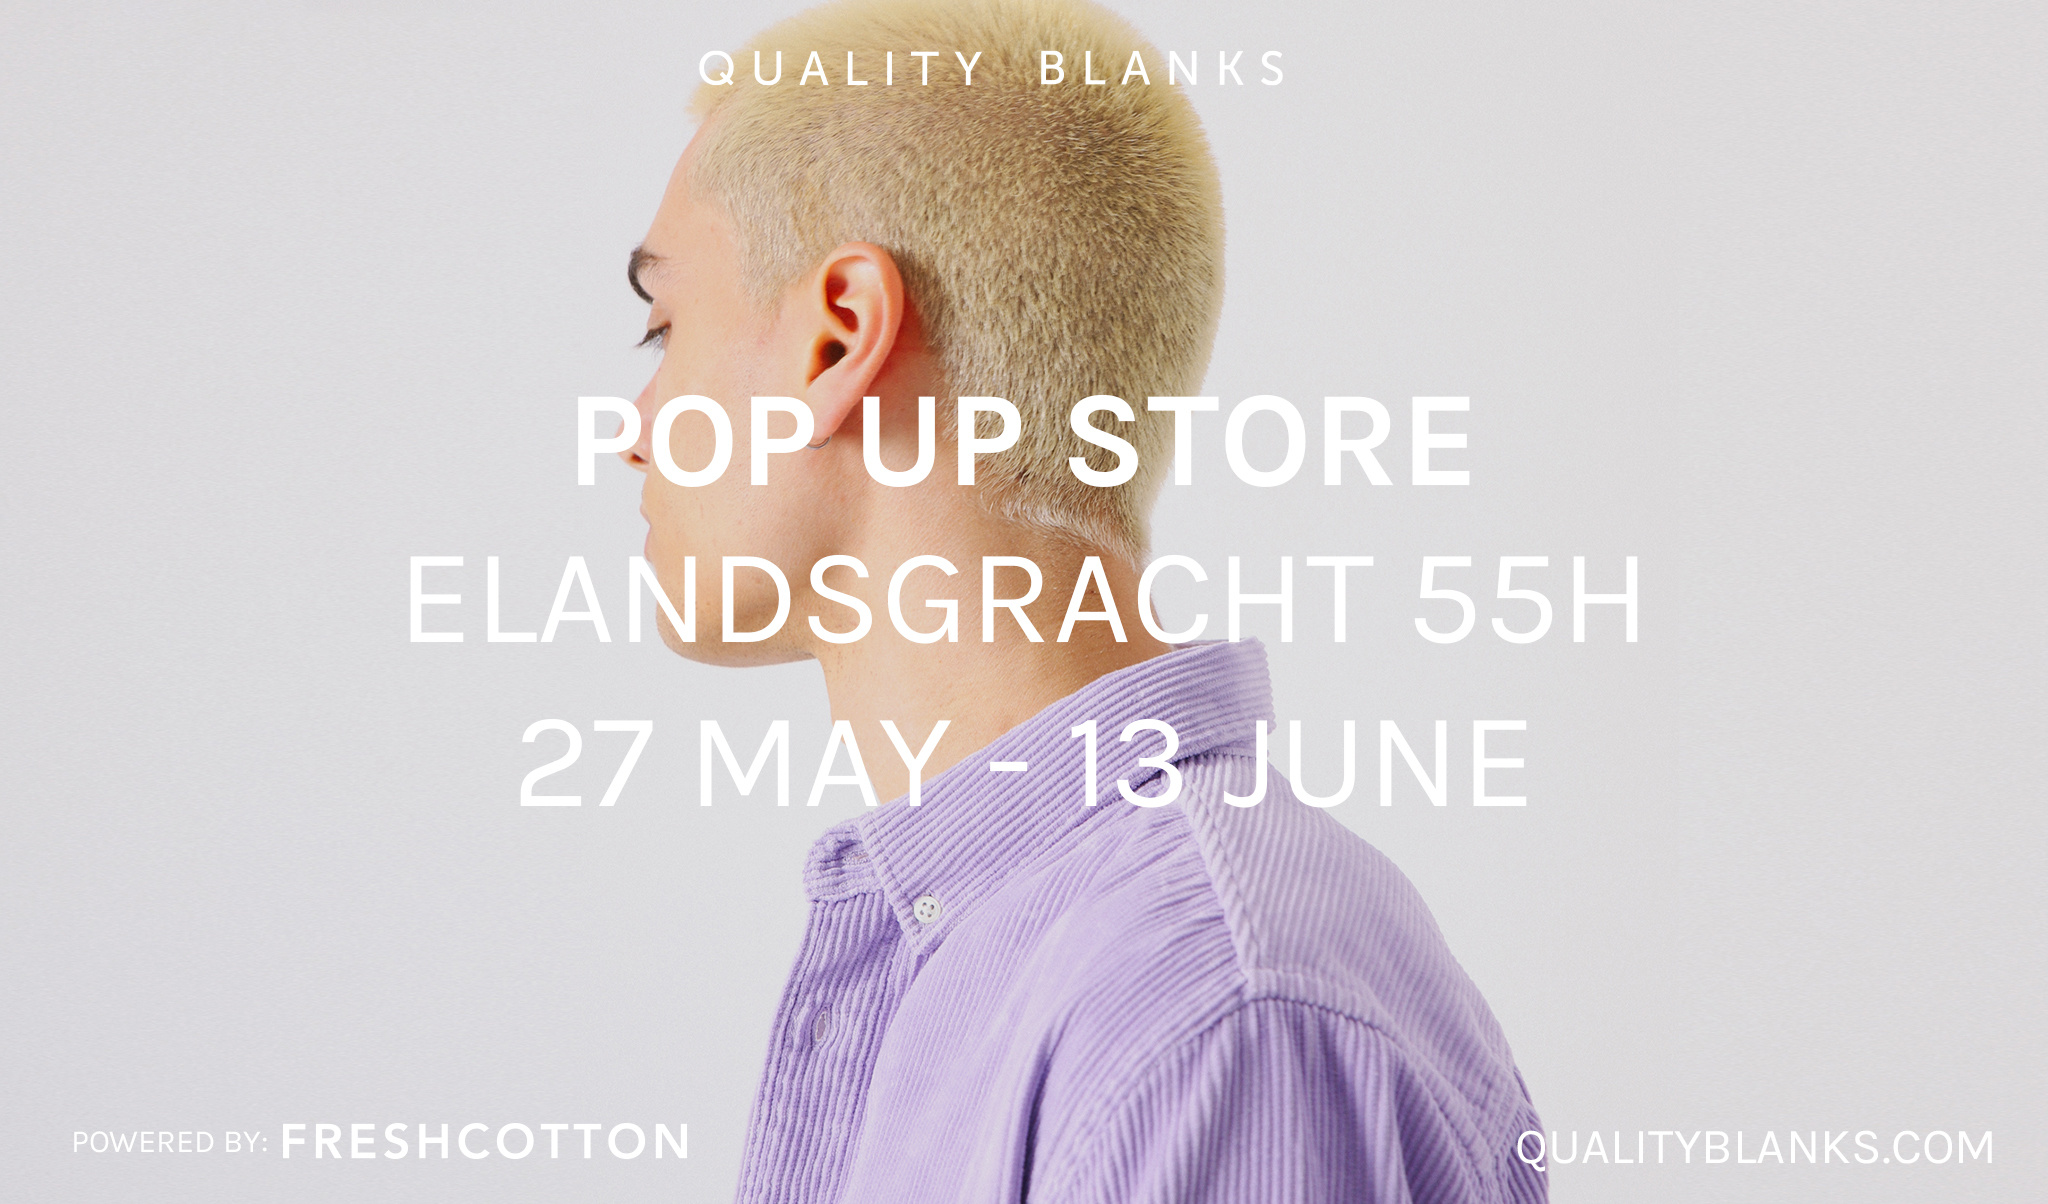 Quality Blanks pop-up store powered by FRESHCOTTON